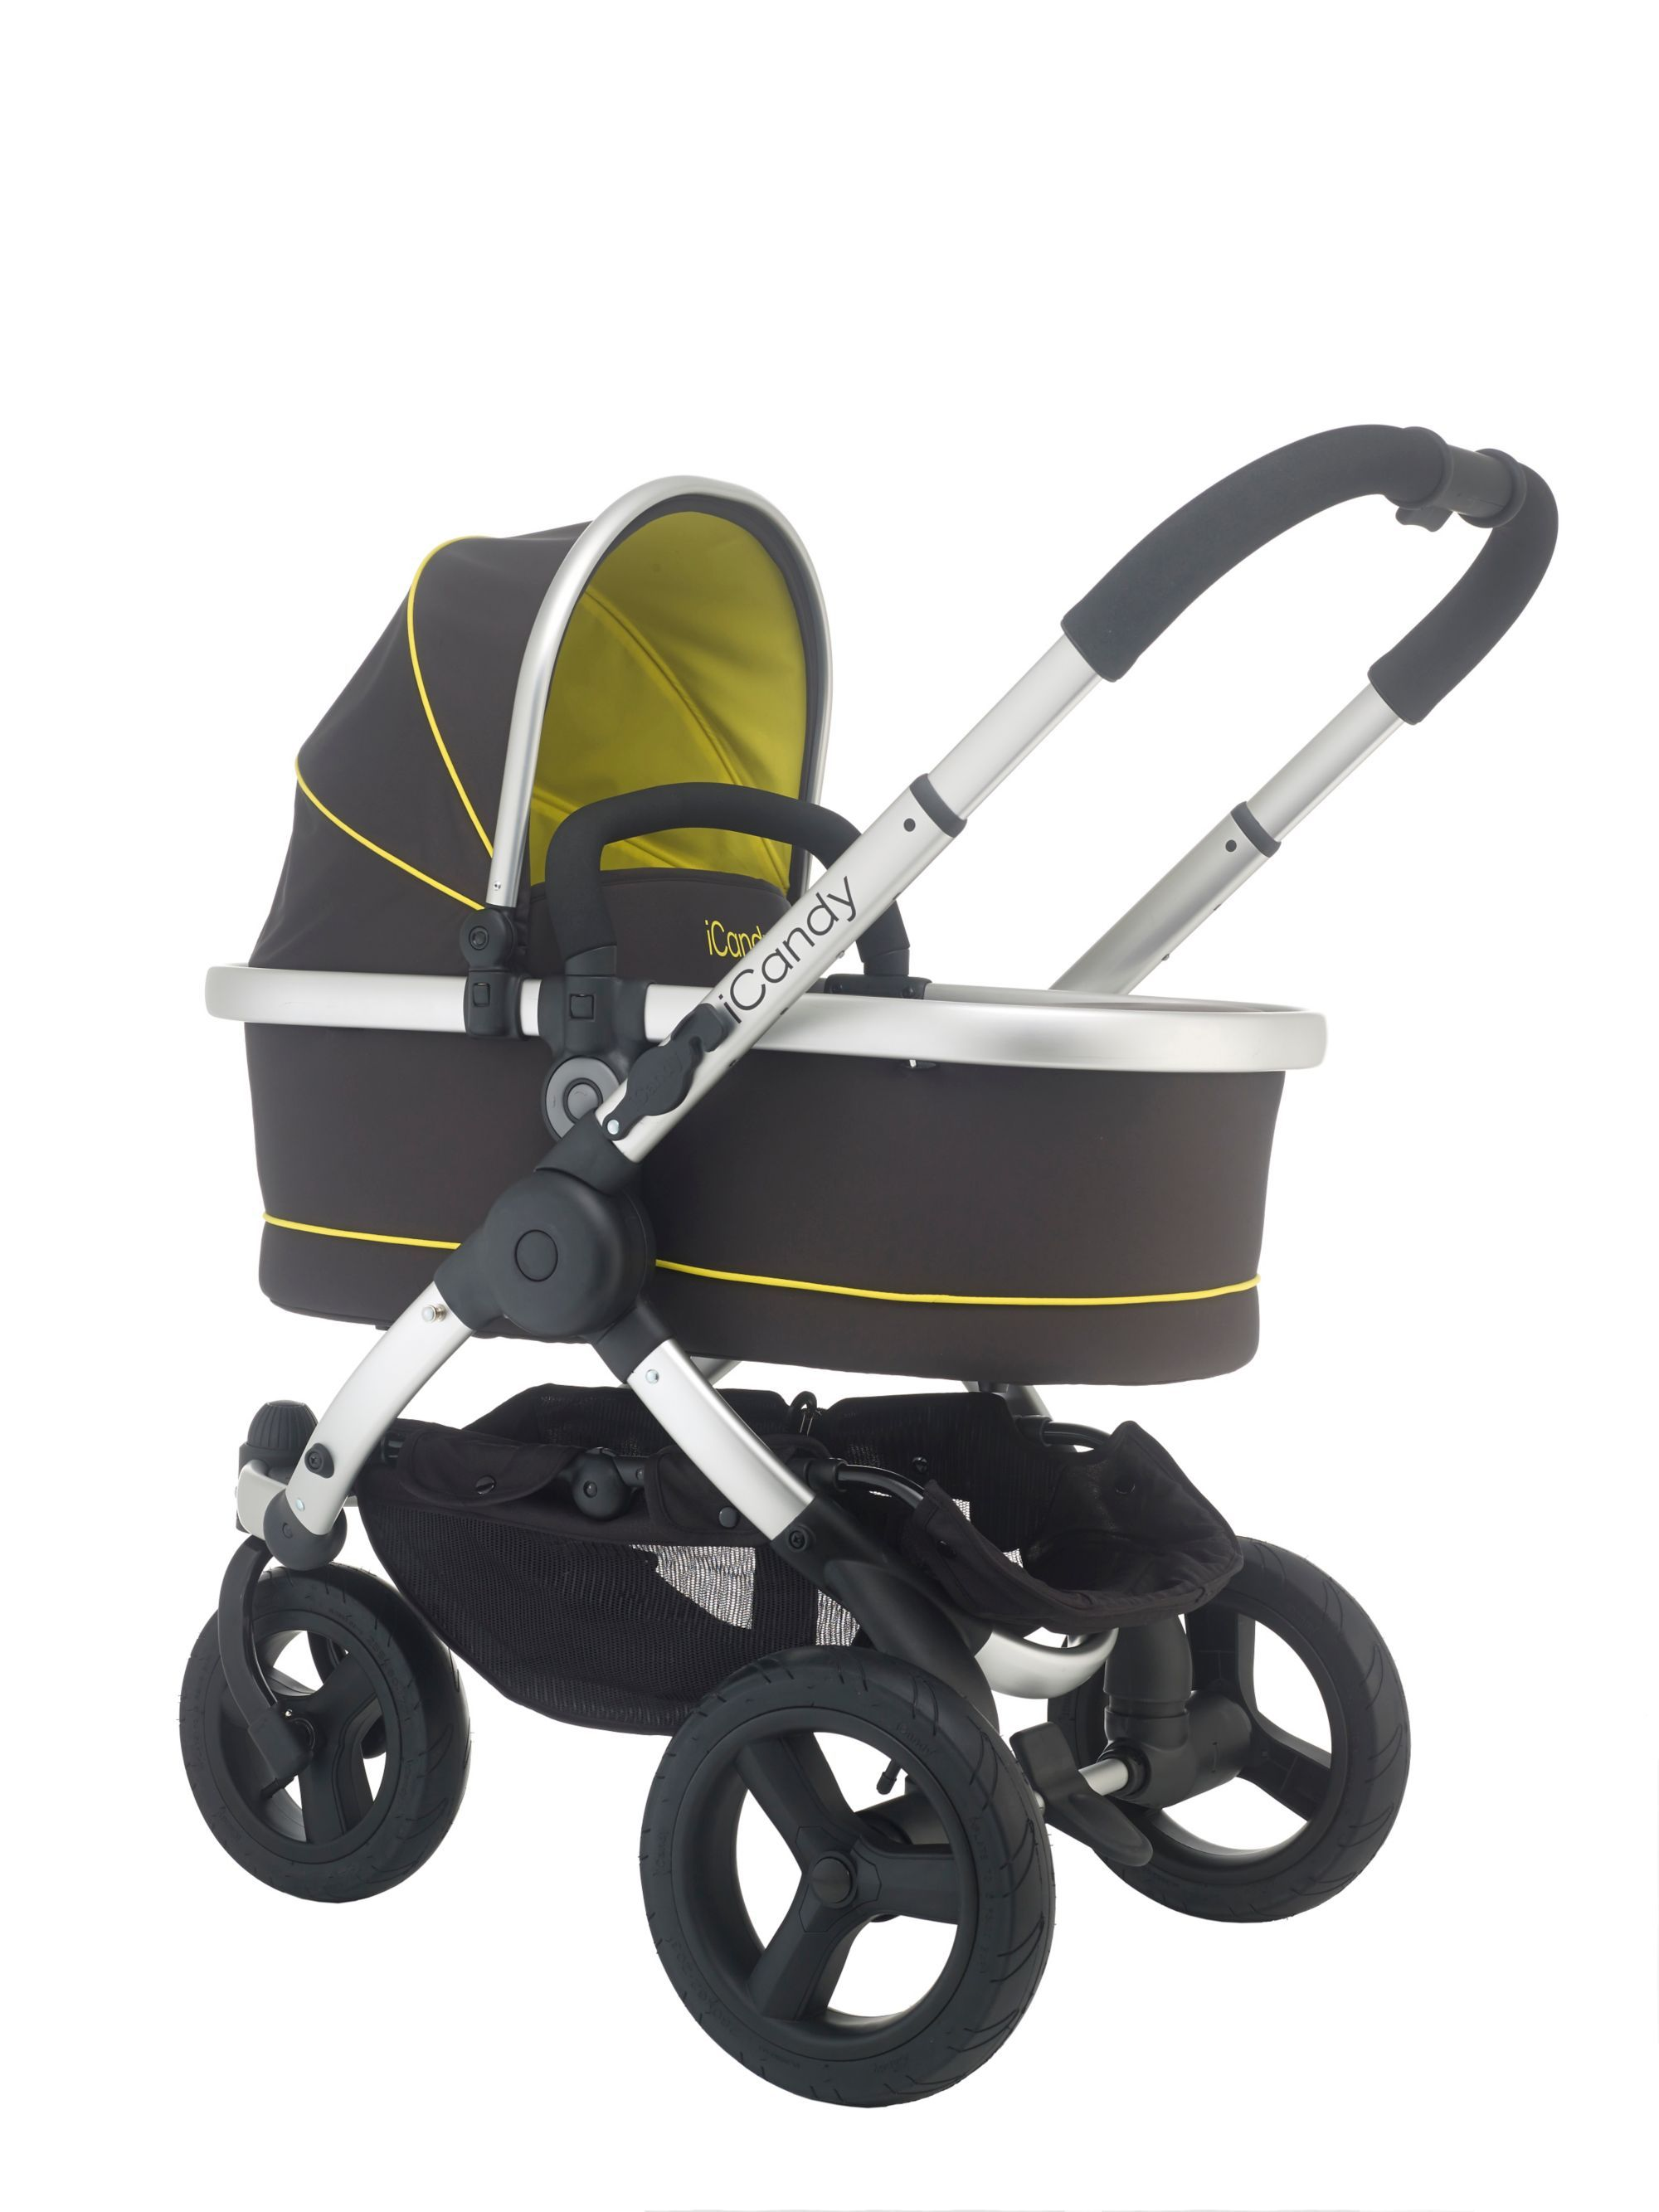 nursery bedding Prams, pushchairs, Baby strollers, All